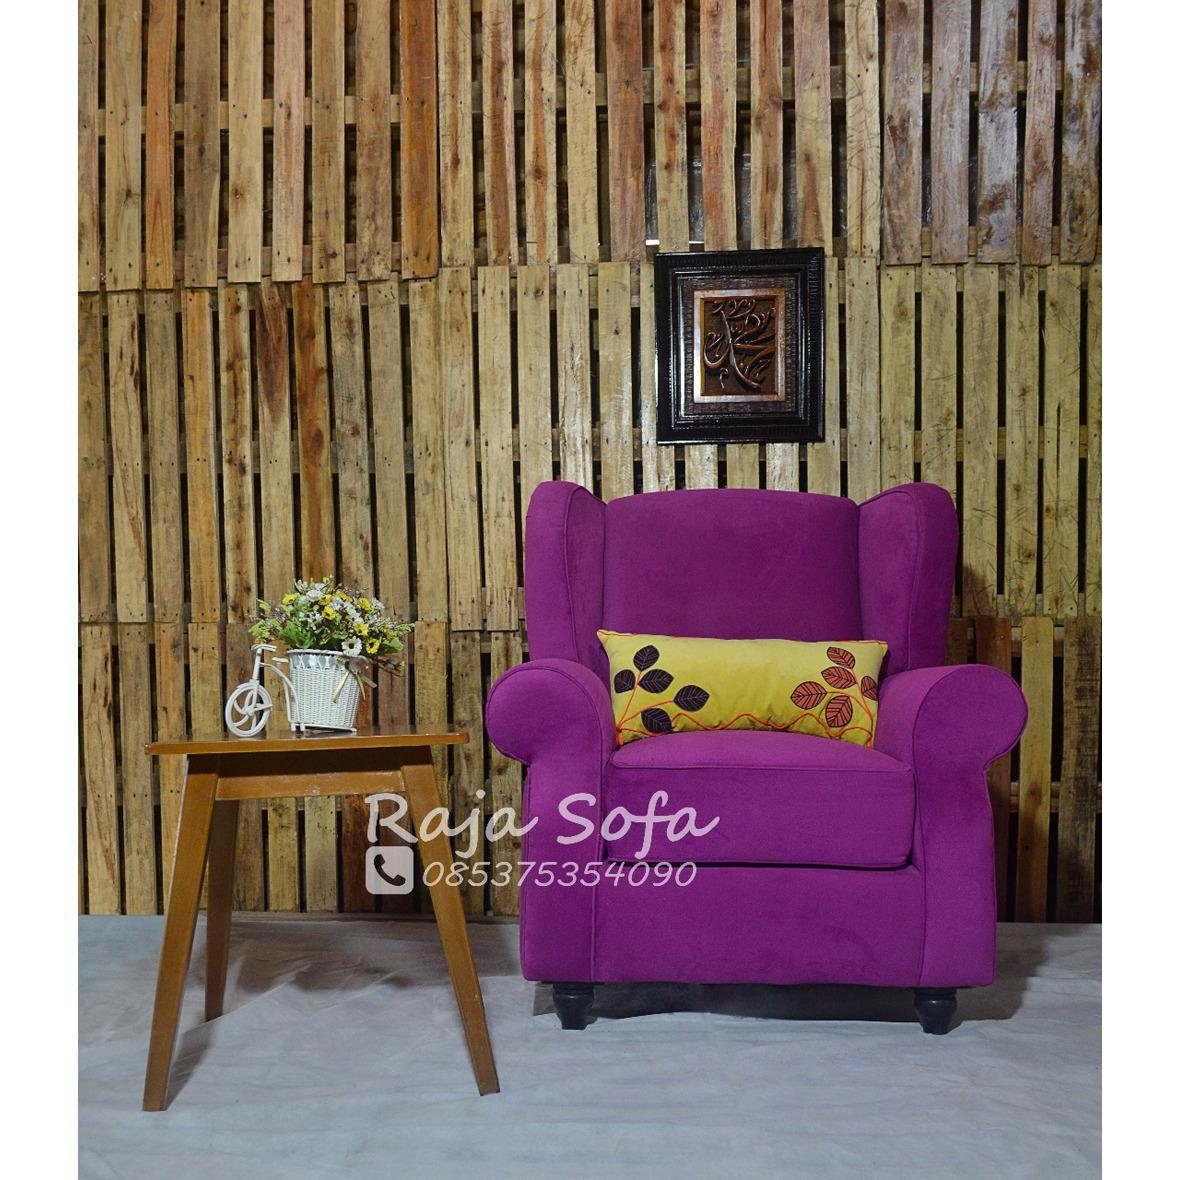 Raja Sofa - Sofa Tamu  Furniture - Sofa Minimalis Modern - Sofa Minimalis Furniture